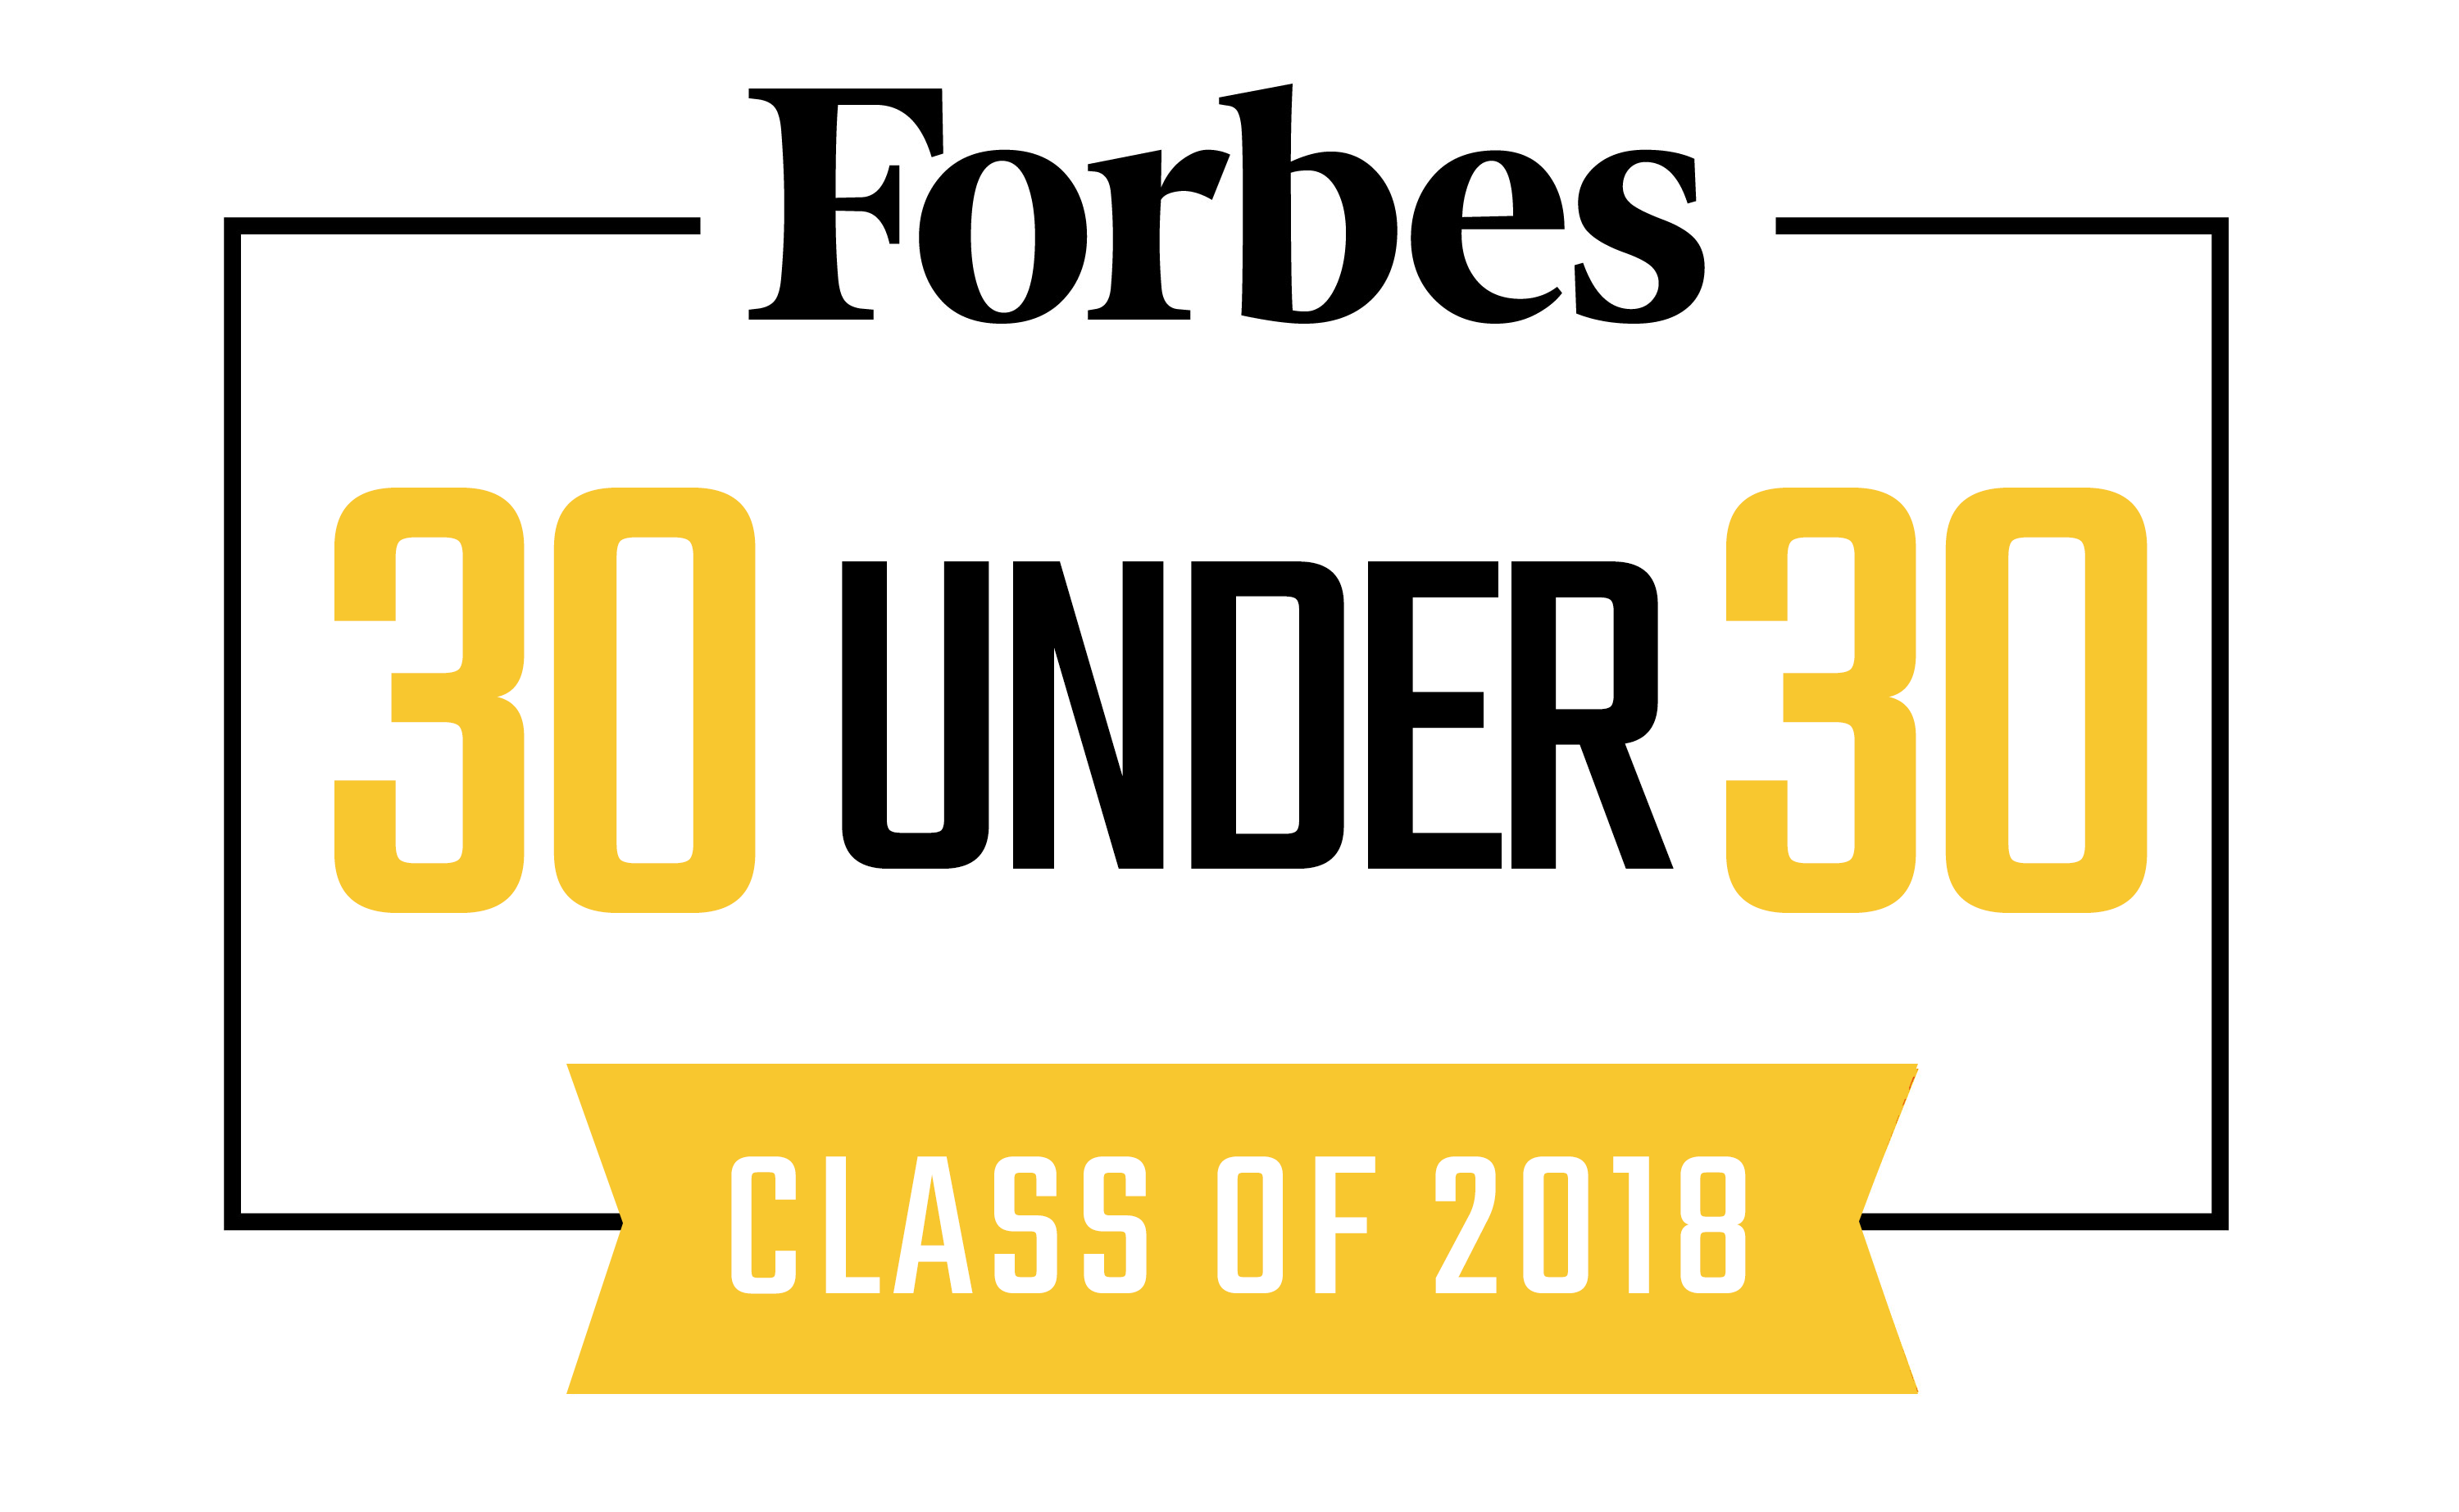 Scott Stiles co-founder of Fair Employment Agency is named on the 2018 Forbes 30 Under 30 Asia list